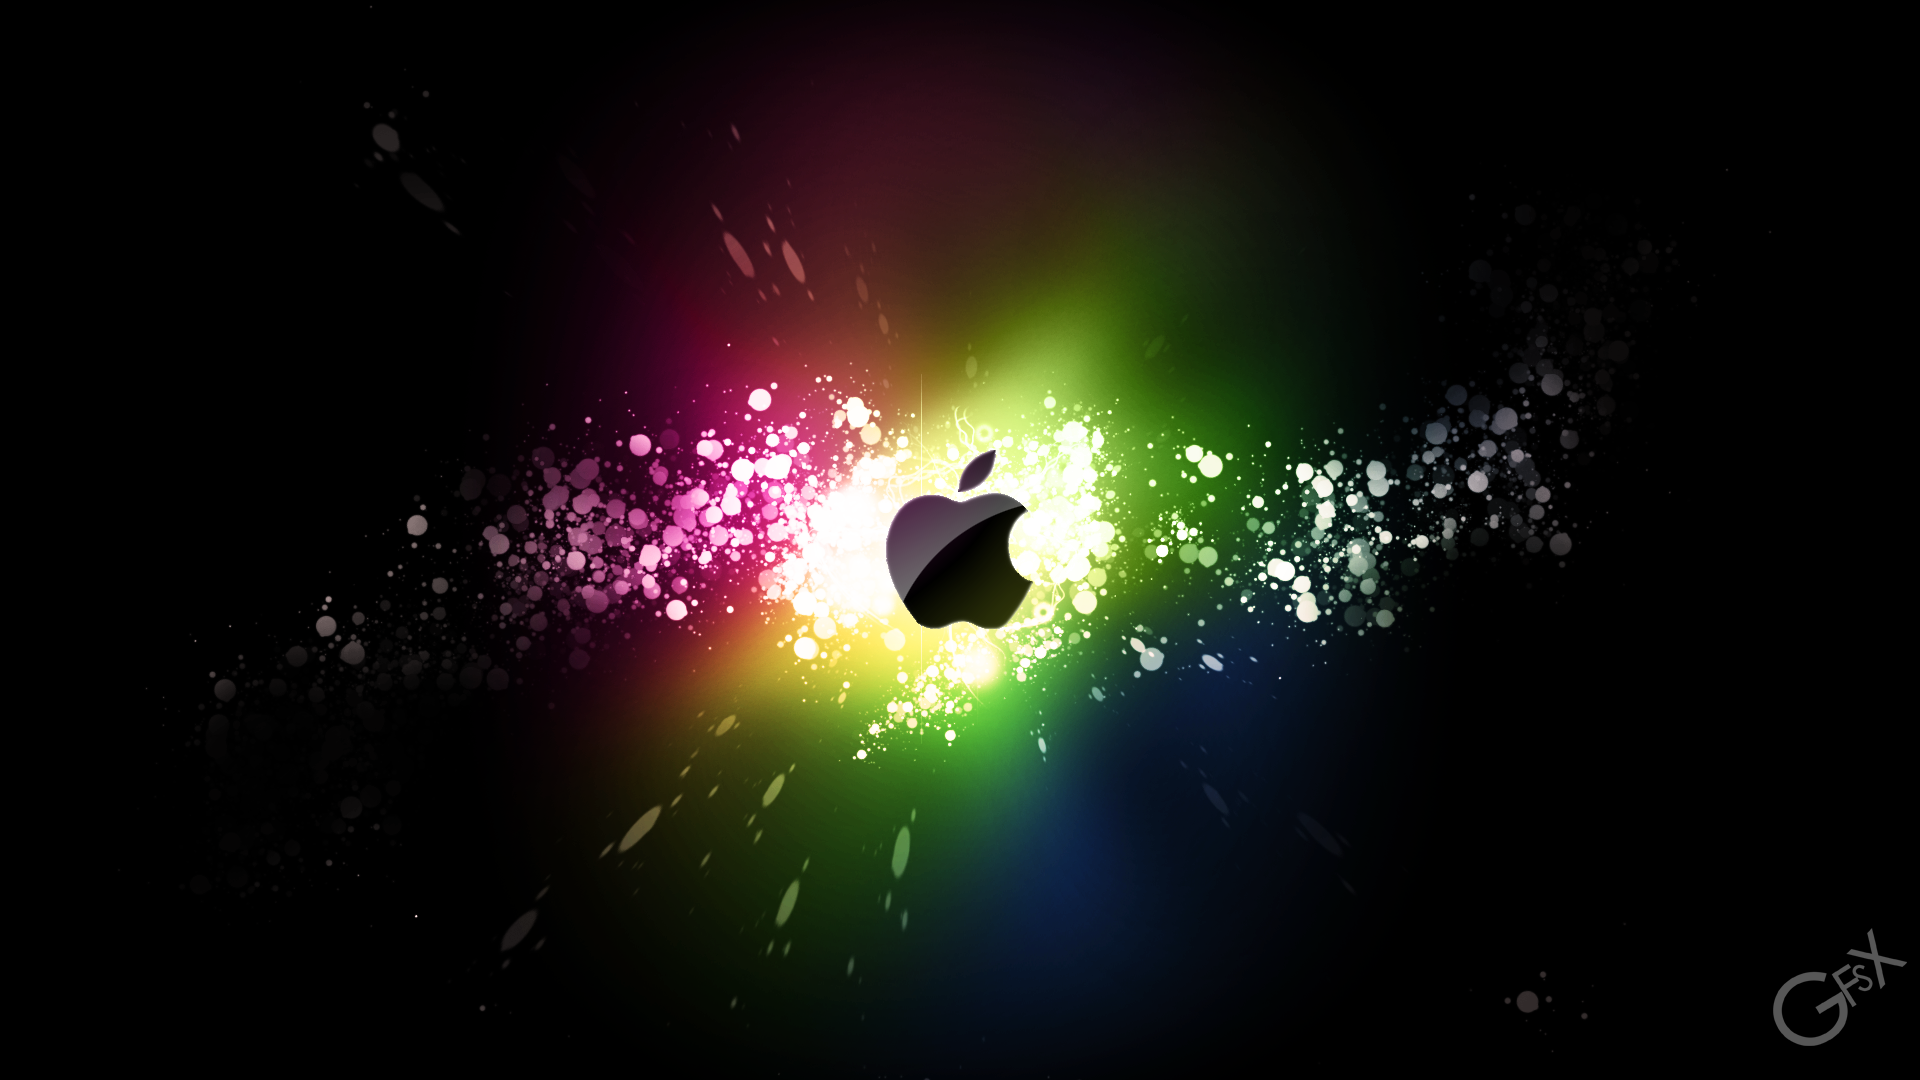 50 inspiring apple mac ipad wallpapers for download ForImmagini Apple Hd